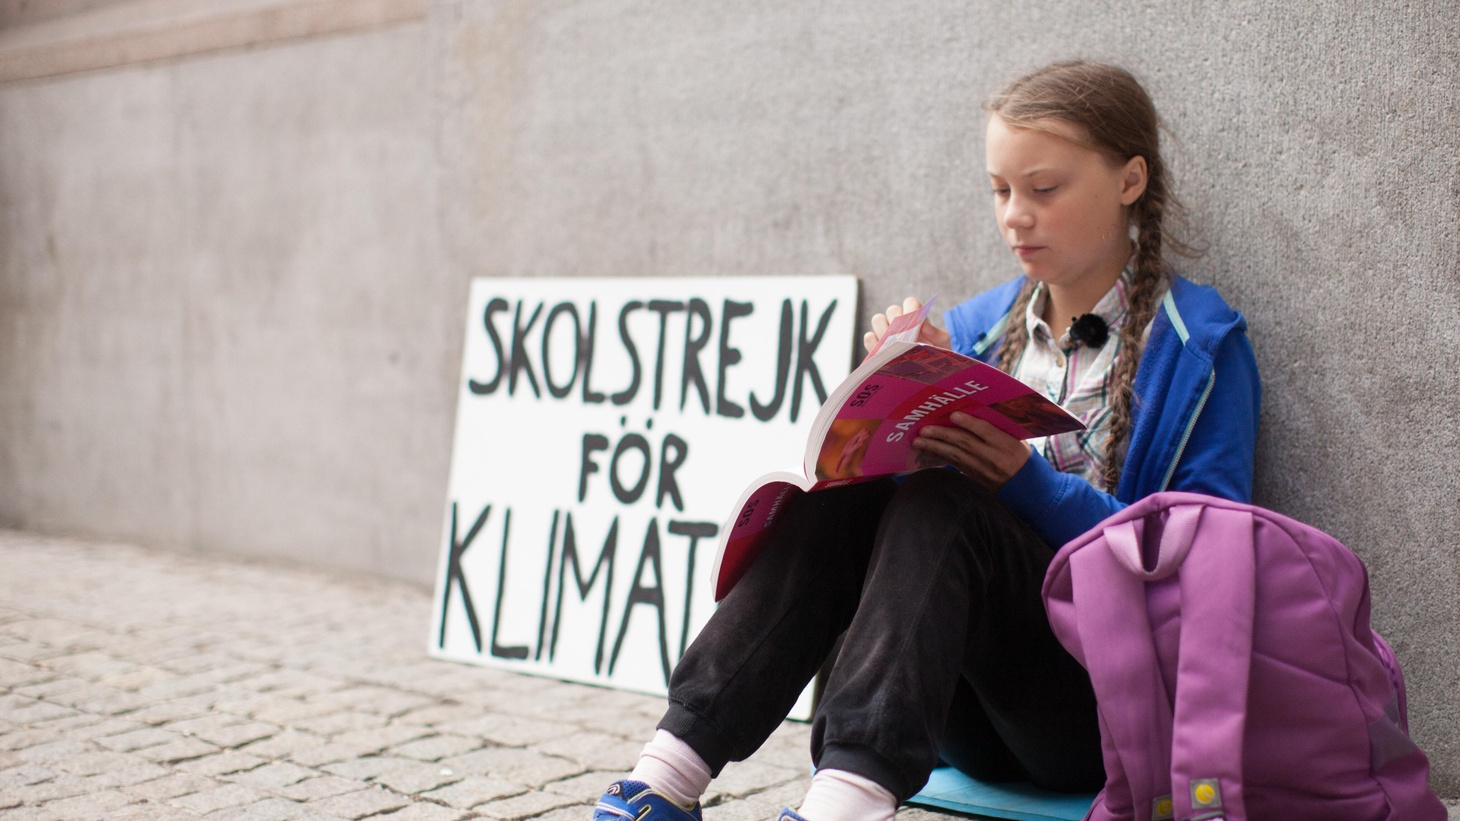 Filmmaker Nathan Grossman chanced upon Greta Thunberg when she was just starting her climate change movement.